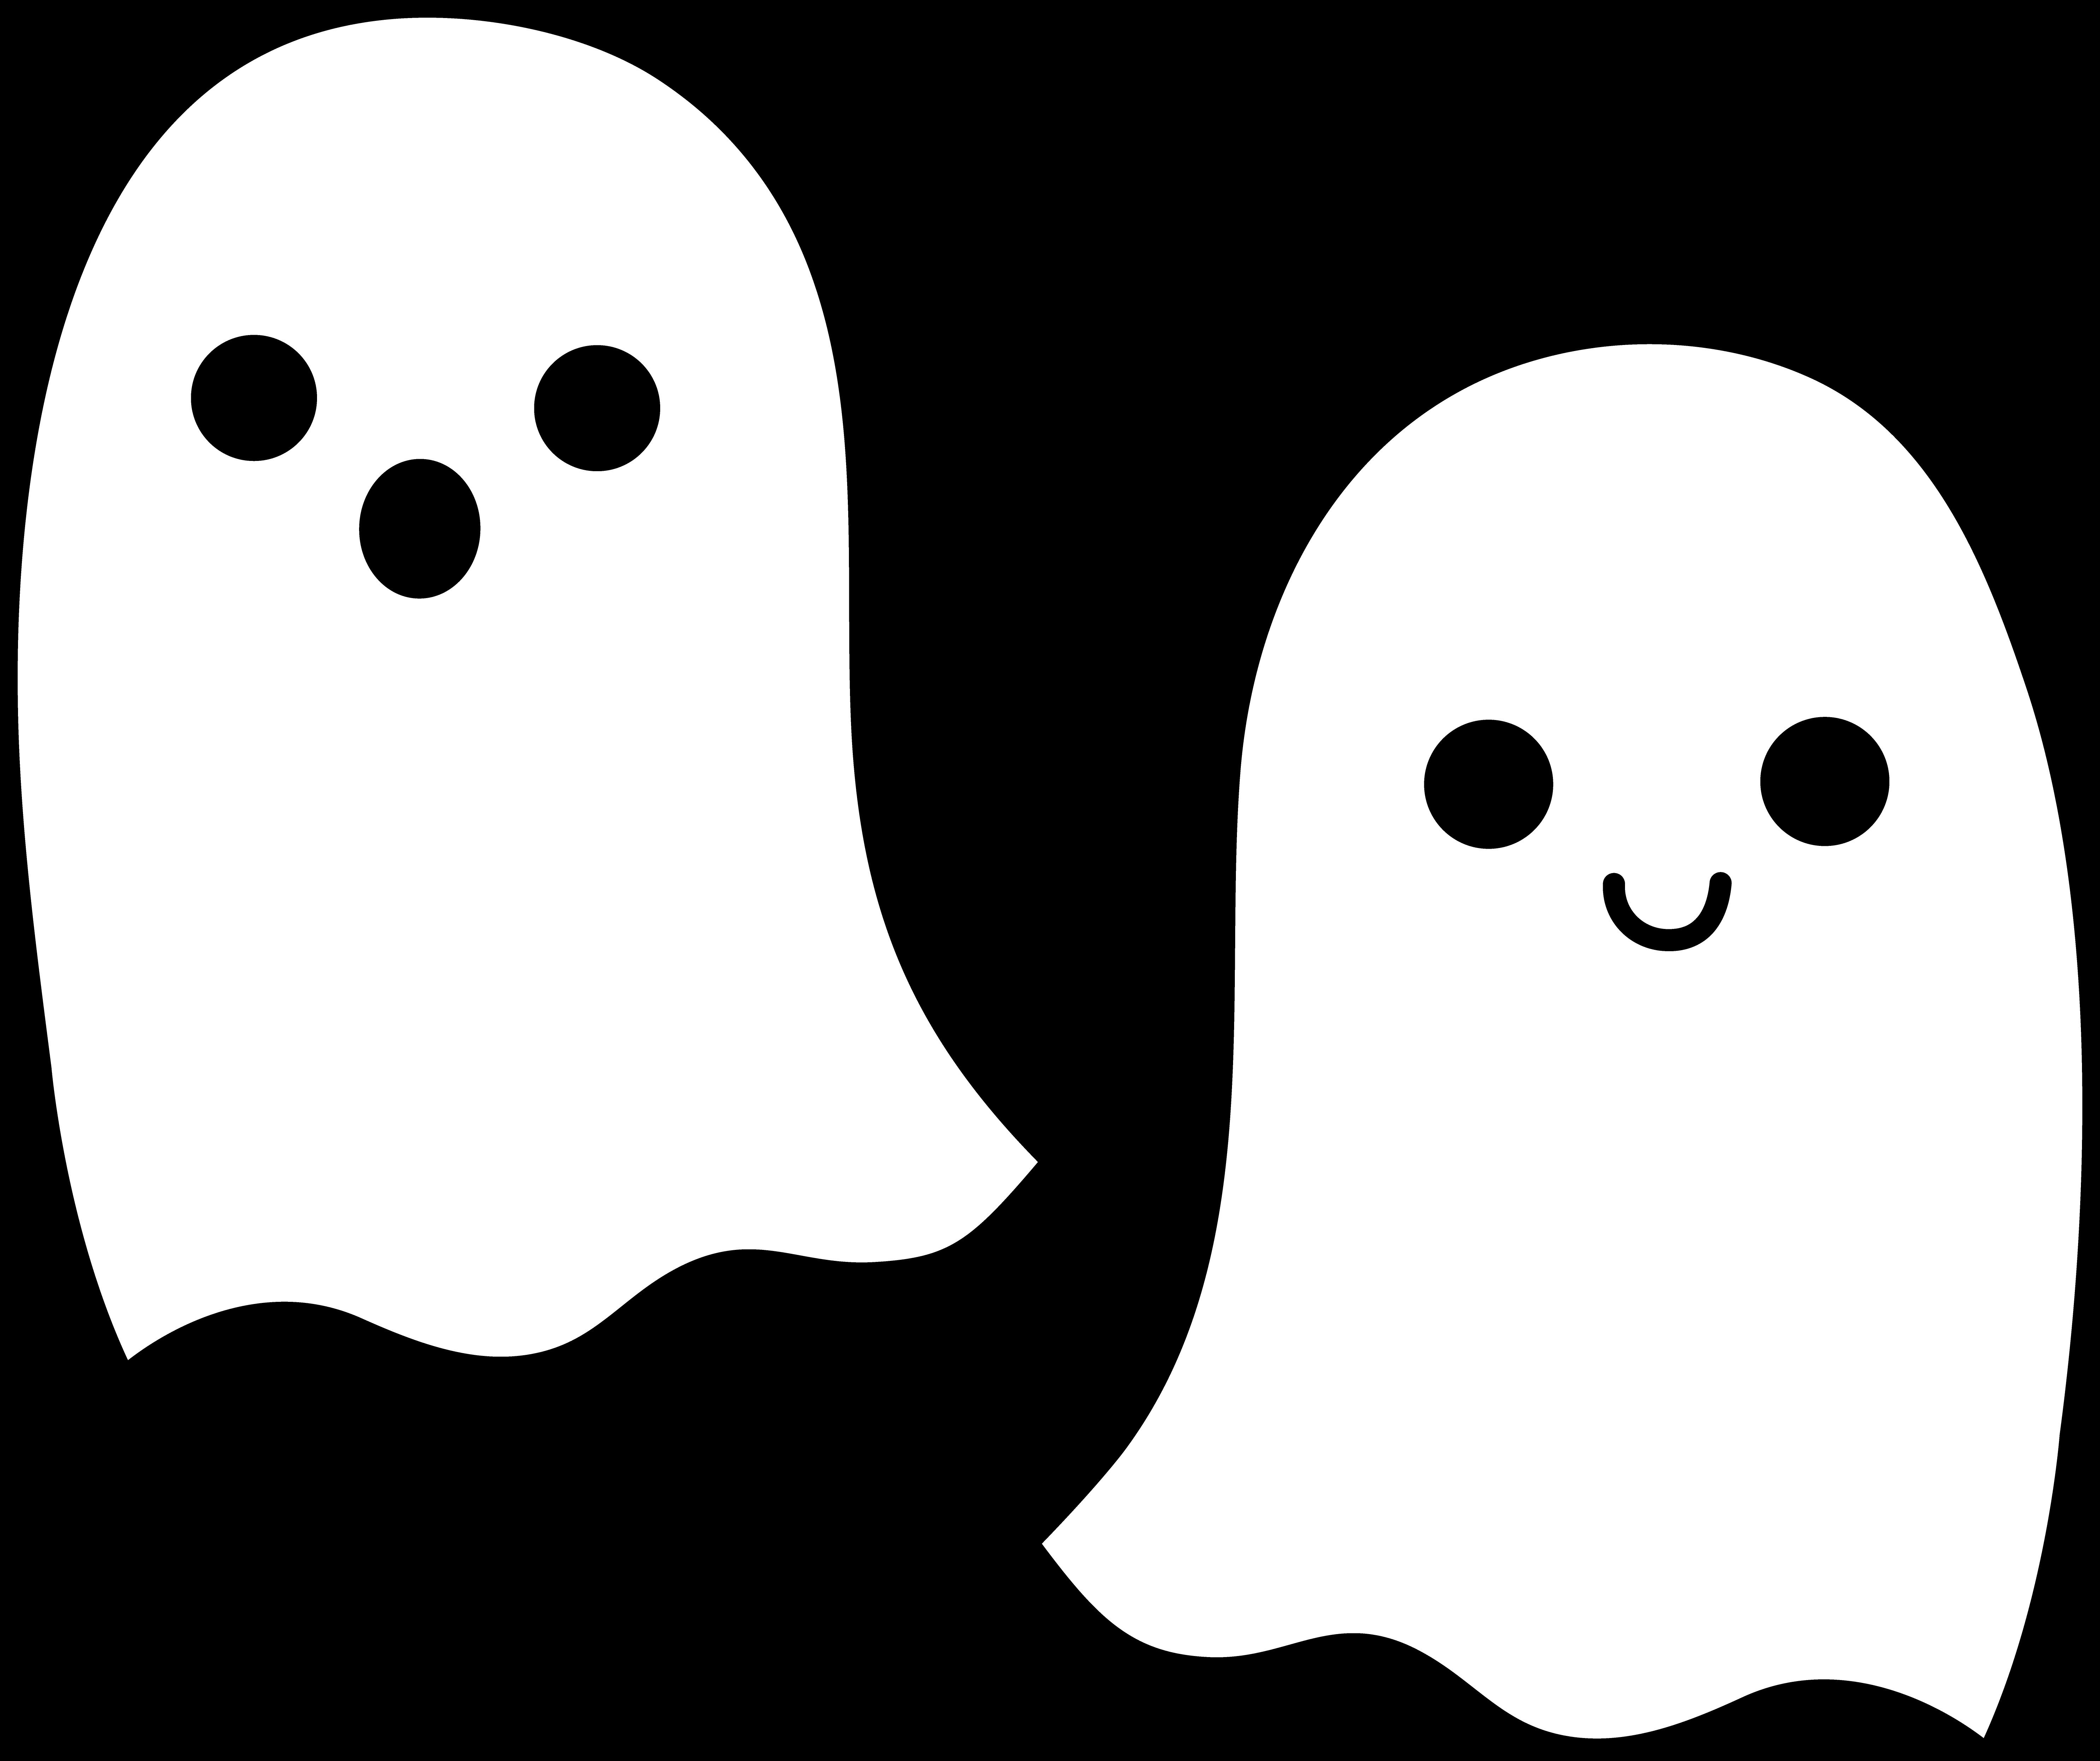 Scal Svg Ghost Halloween Halloween Stencils Halloween Vinyl Cute Ghost Get access to exclusive content and experiences on the world's largest membership platform for artists and creators. pinterest